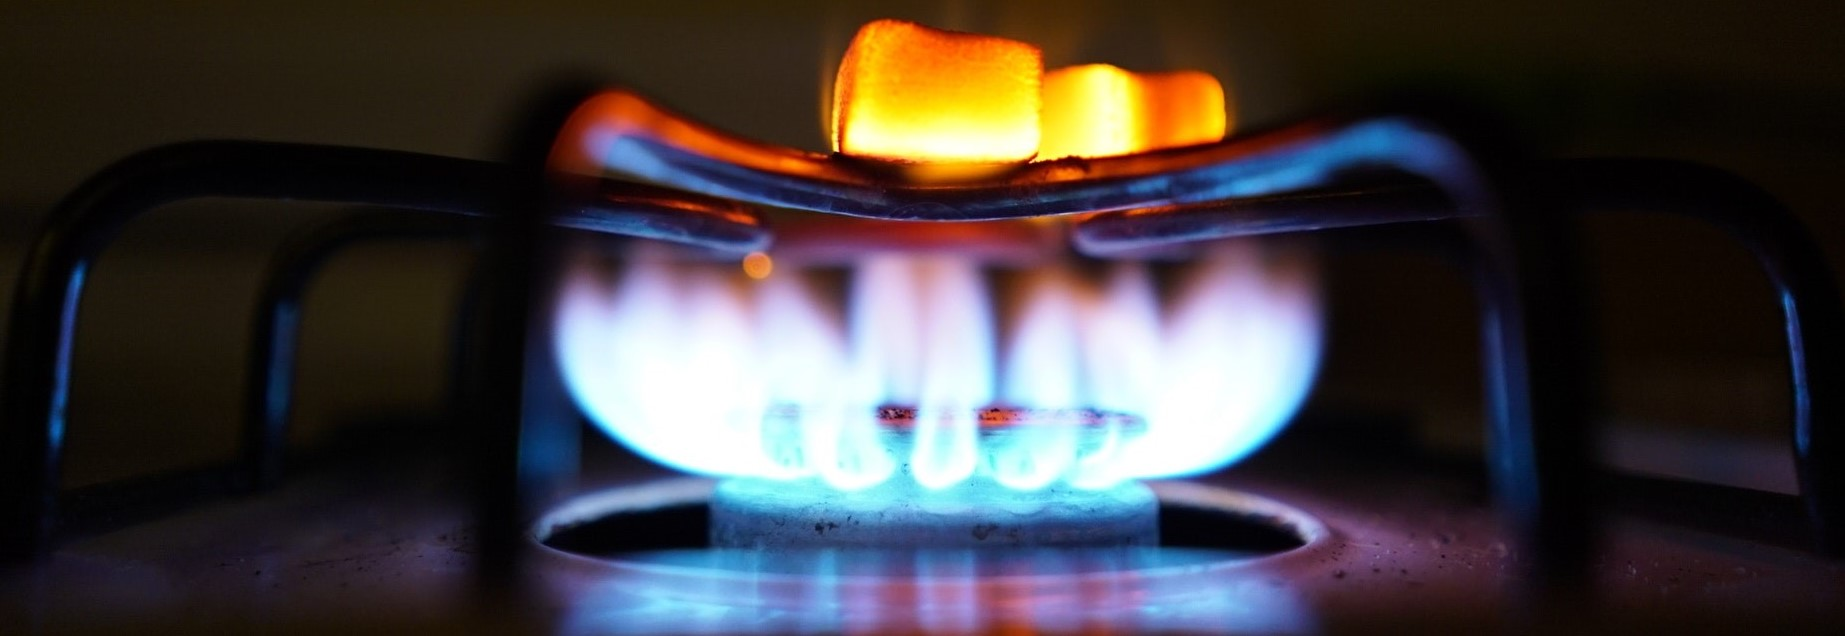 The Rise of Electric Heating: The 2025 Gas Boiler Ban